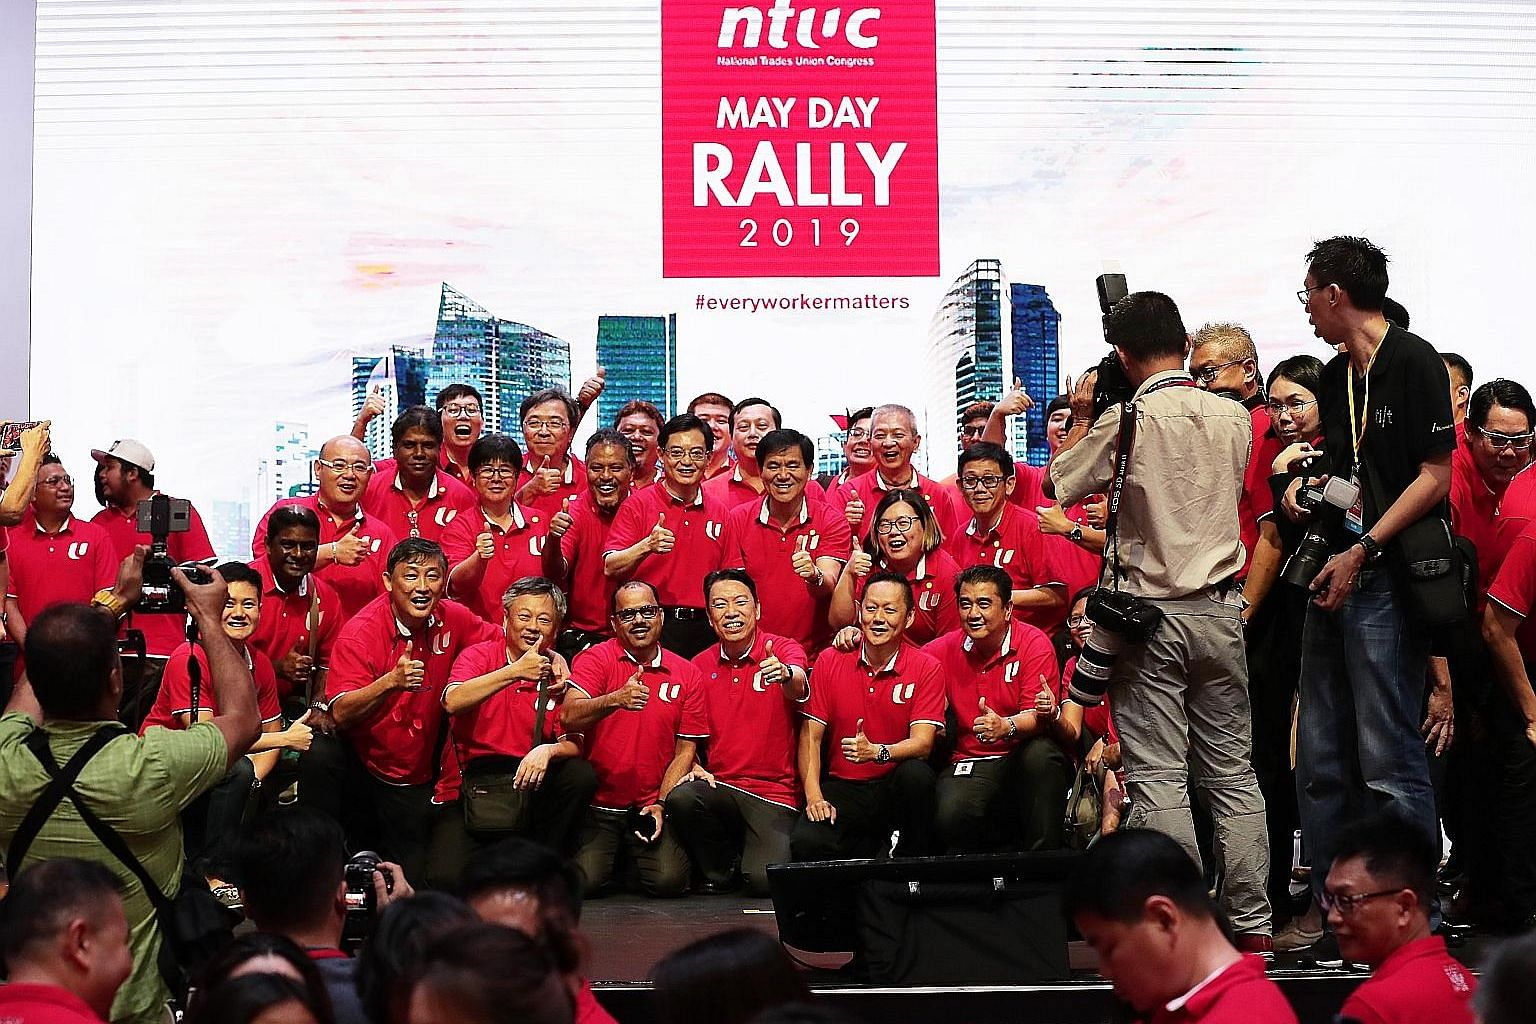 """Deputy Prime Minister Heng Swee Keat in a group photo with members of the labour movement at yesterday's May Day Rally. In his speech, Mr Heng gave the assurance that the """"close symbiotic relationship between the PAP and the NTUC, which underpins our"""